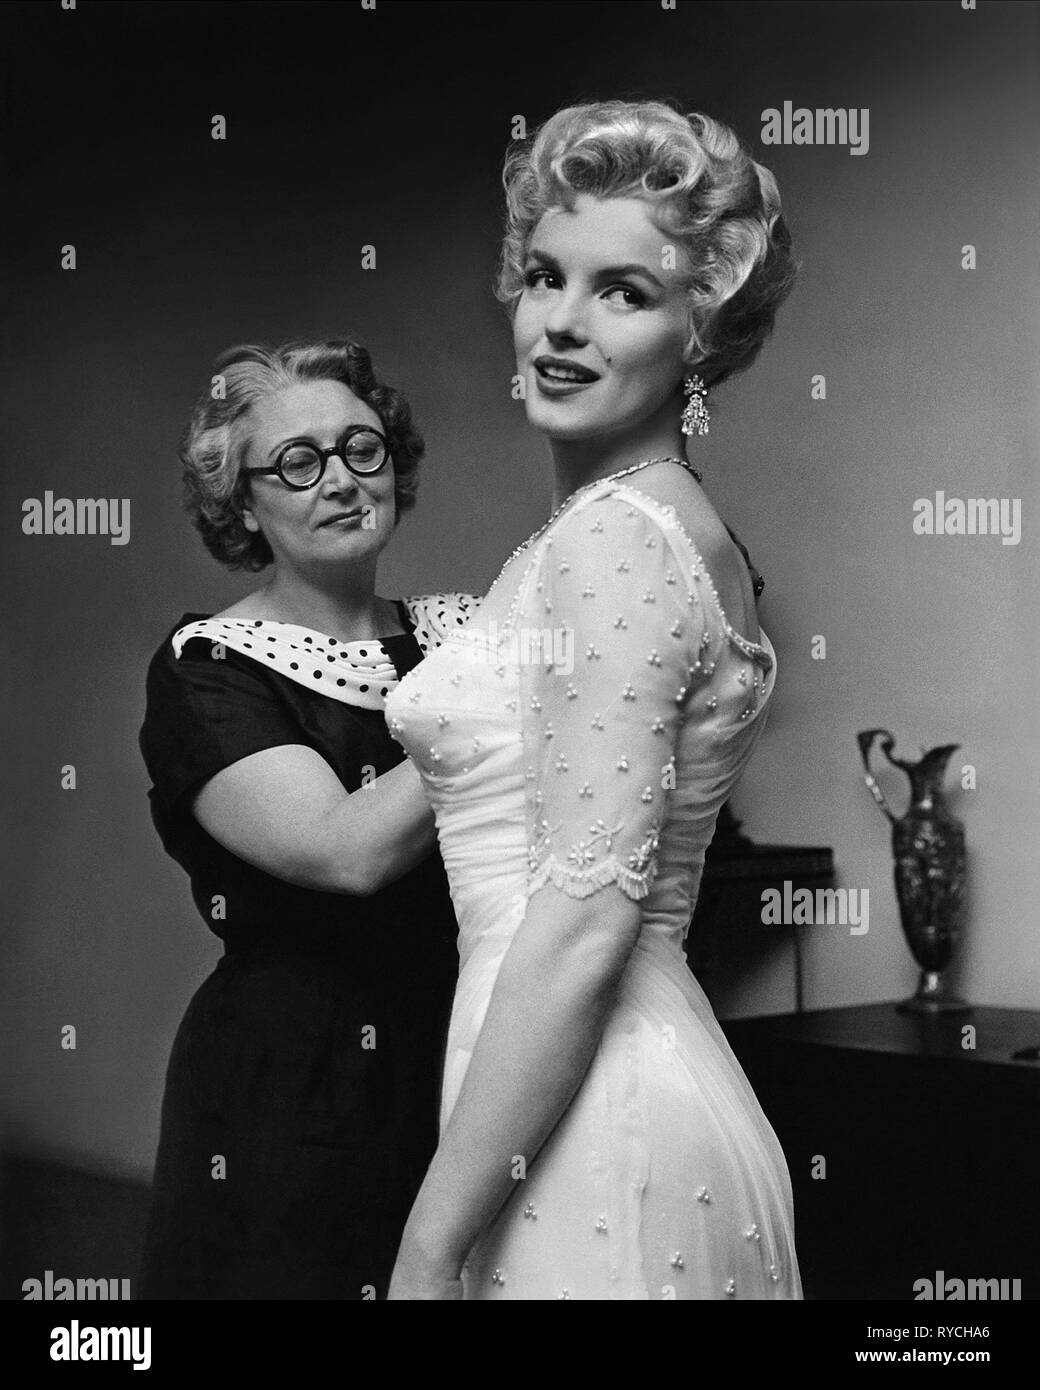 MARILYN MONROE, THE PRINCE AND THE SHOWGIRL, 1957 - Stock Image